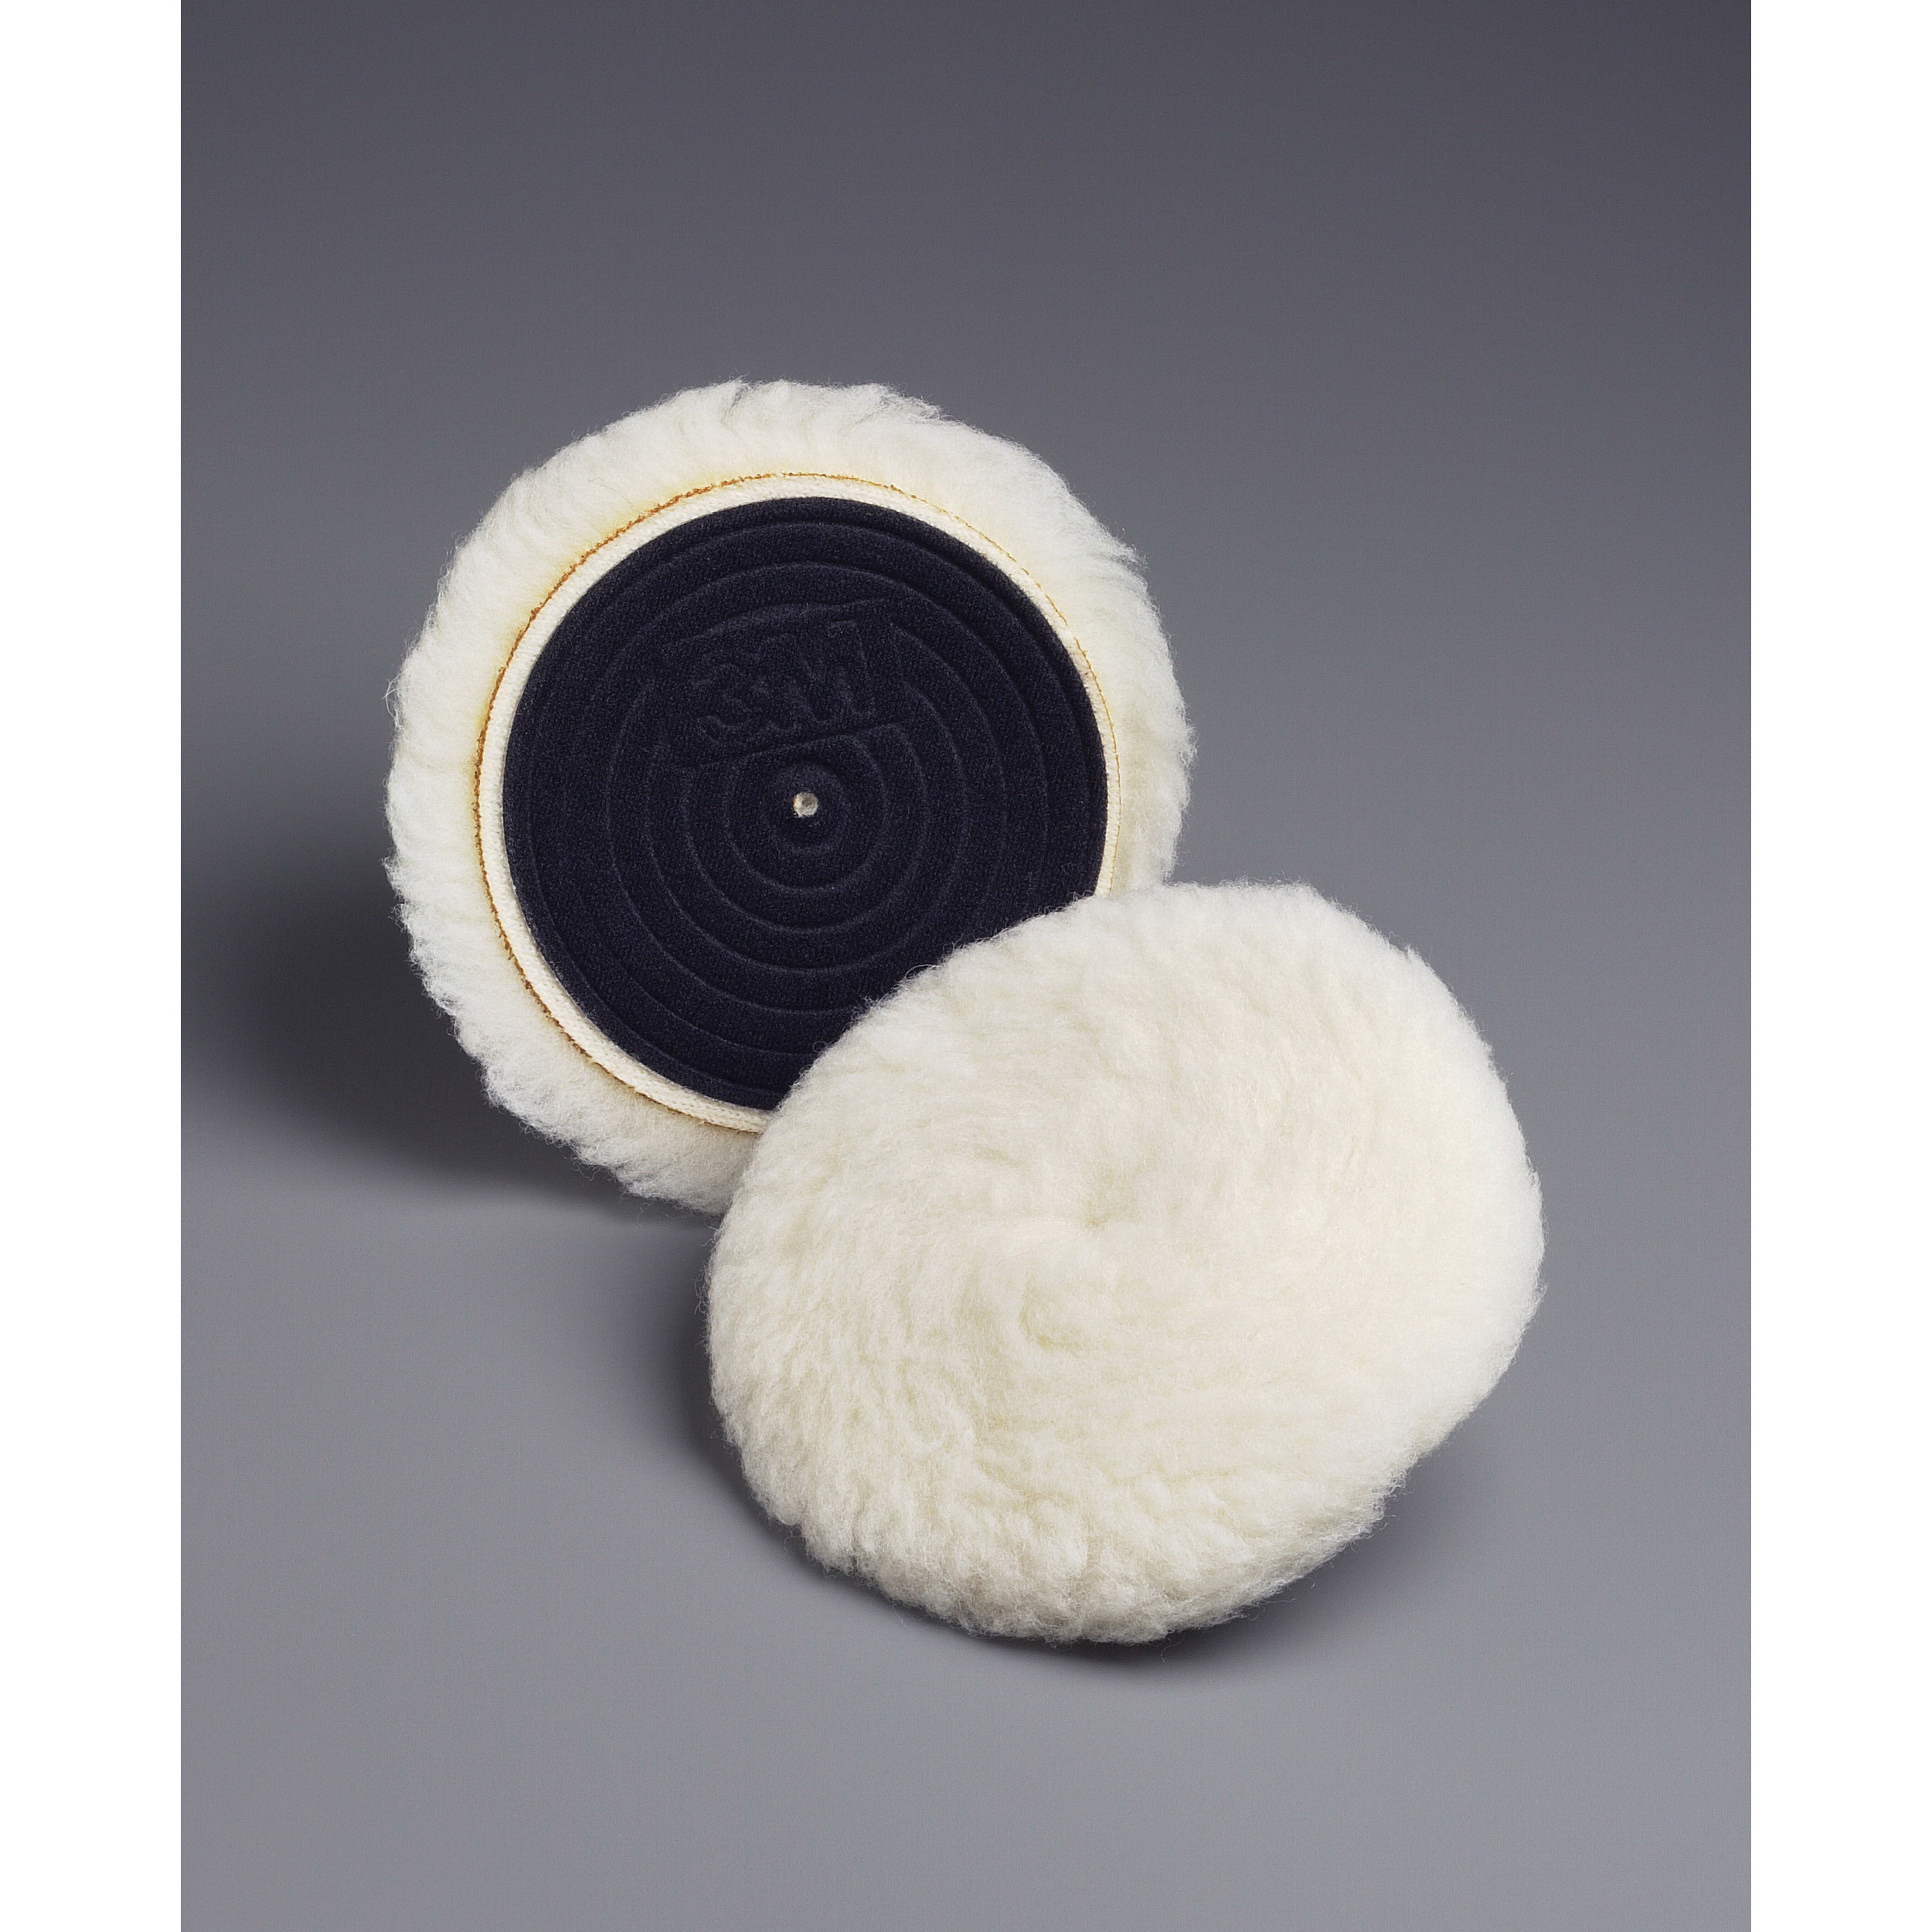 Finesse-it™ 051144-85083 Knit II Regular Buffing Pad, 5-1/4 in OAD, 0.94 in THK, Hook and Loop Attachment, Wool Pad